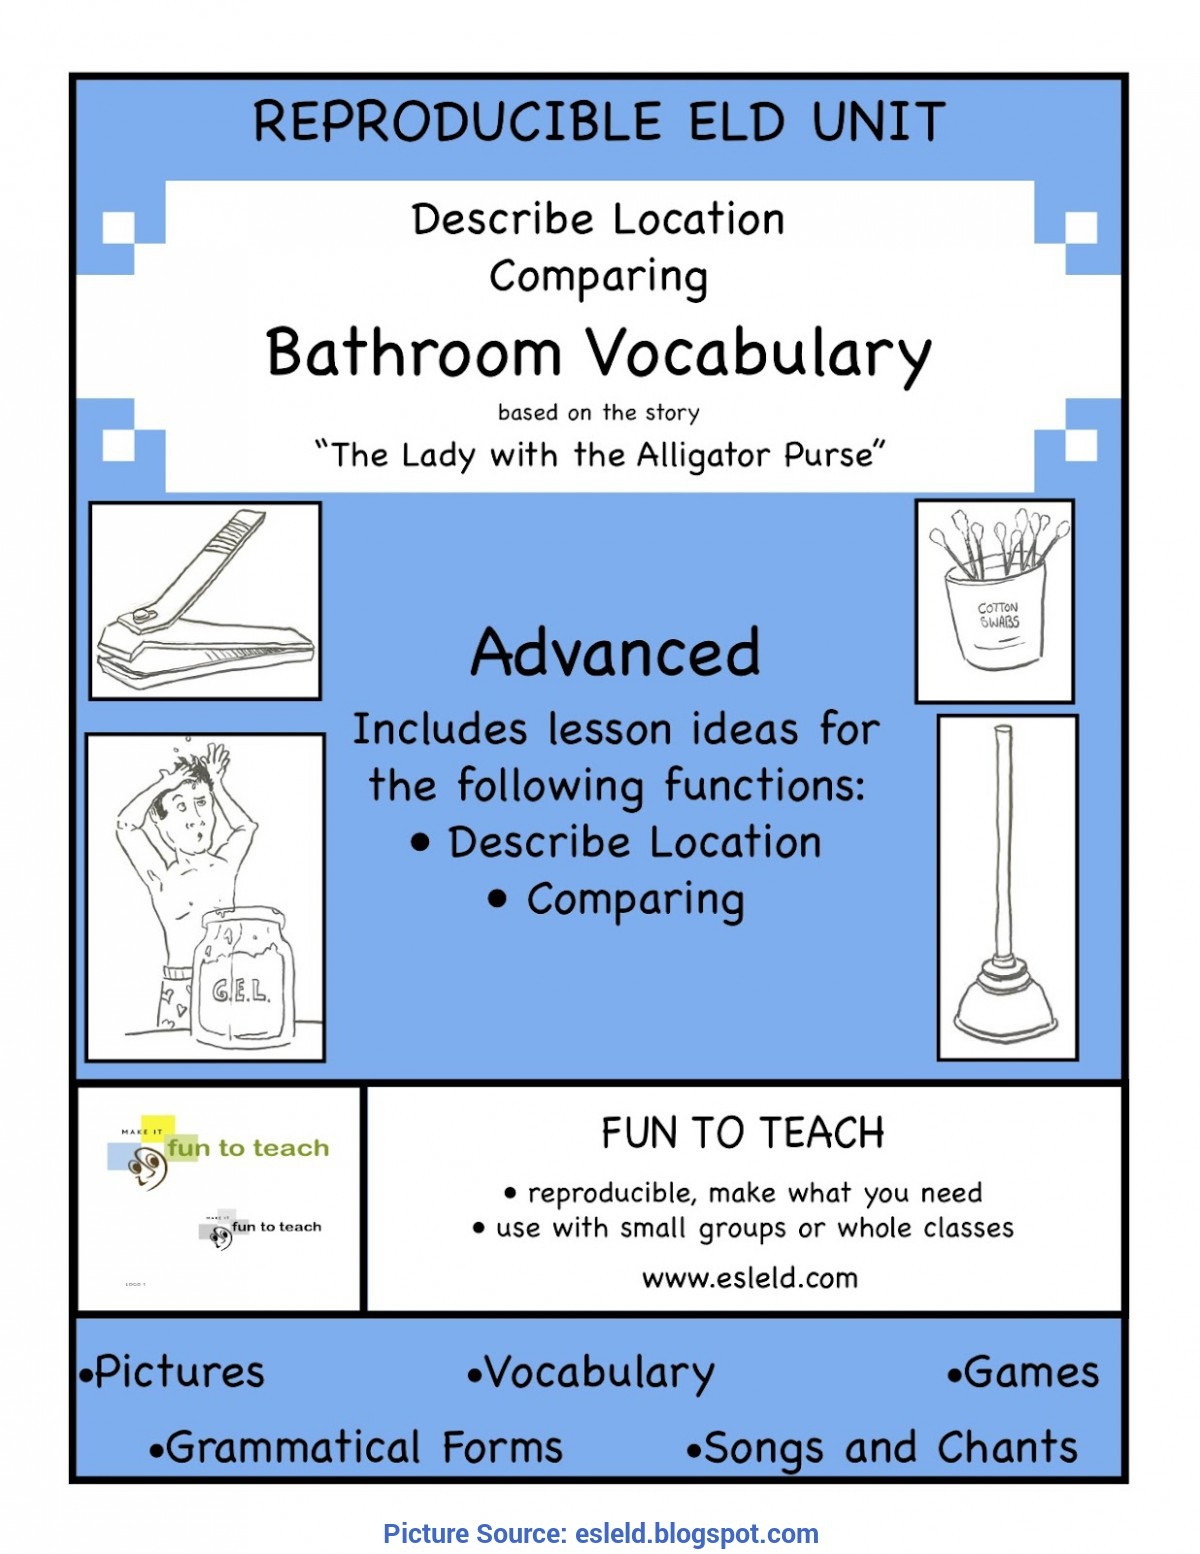 Complex Interesting Lesson Plans For Teaching English Fun To Teach Esl - Teaching English As A Second Lang